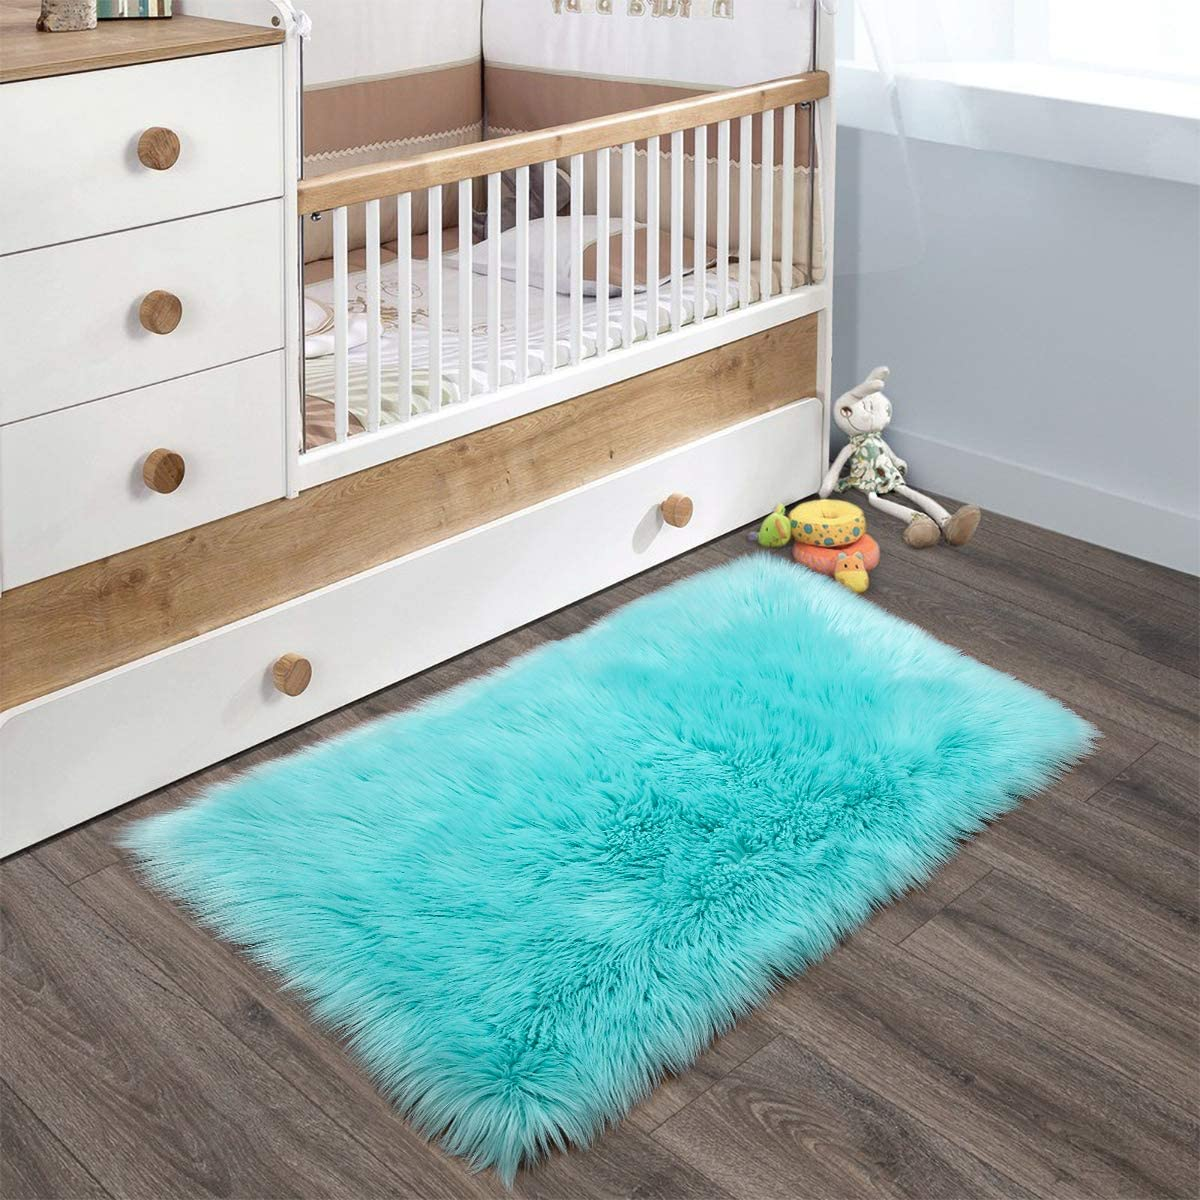 YOH Super Soft Area Rugs Silky Smooth Bedroom Mats for Living Room Kids Room Multicolor Optional Home Decor Carpets (2 x 3 Feet Rectangle, Light Blue)